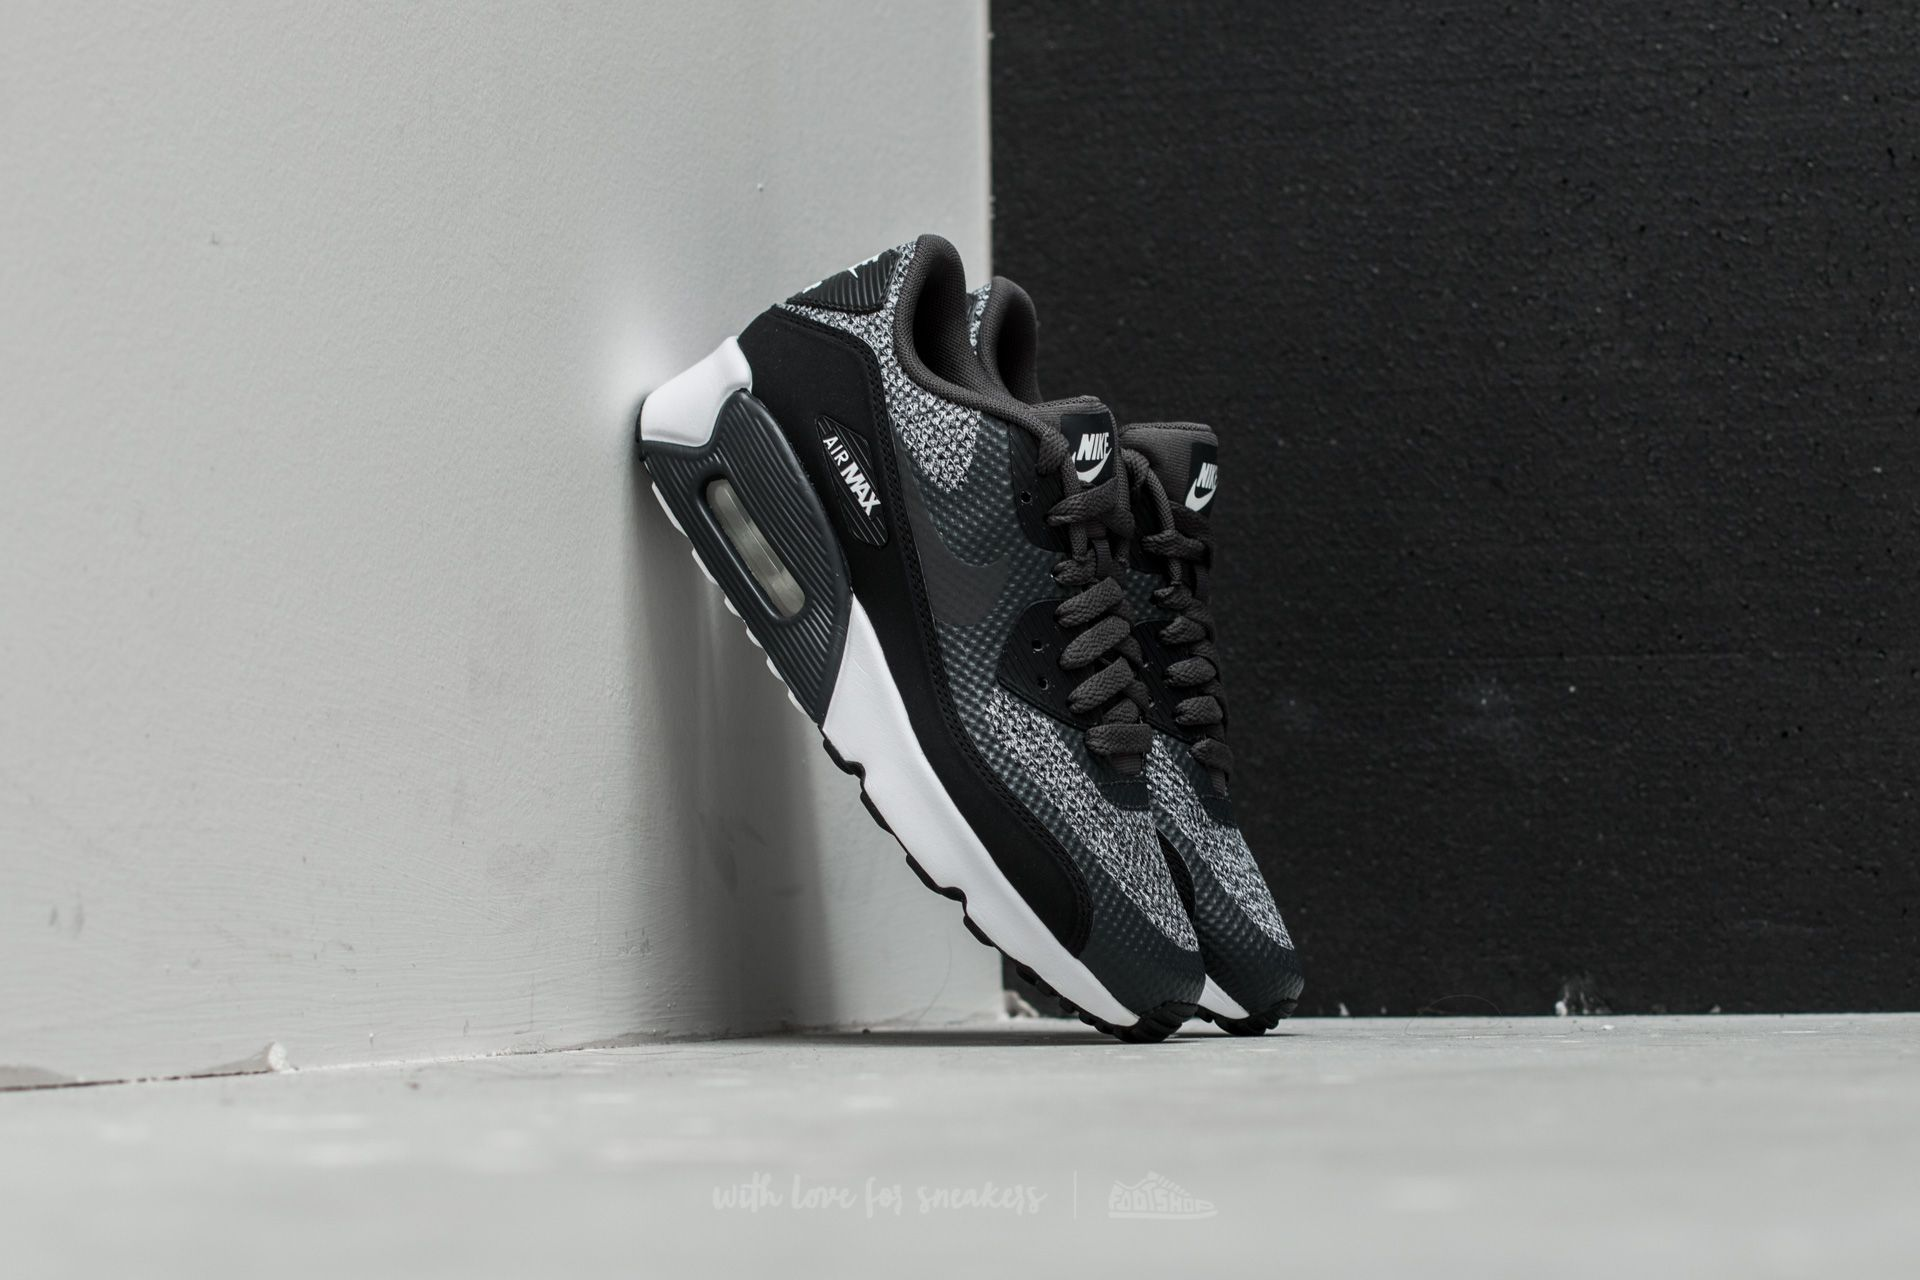 acheter pas cher 43ee3 dc3be Nike Air Max 90 Ultra 2.0 SE (GS) Anthracite/ Black-White ...